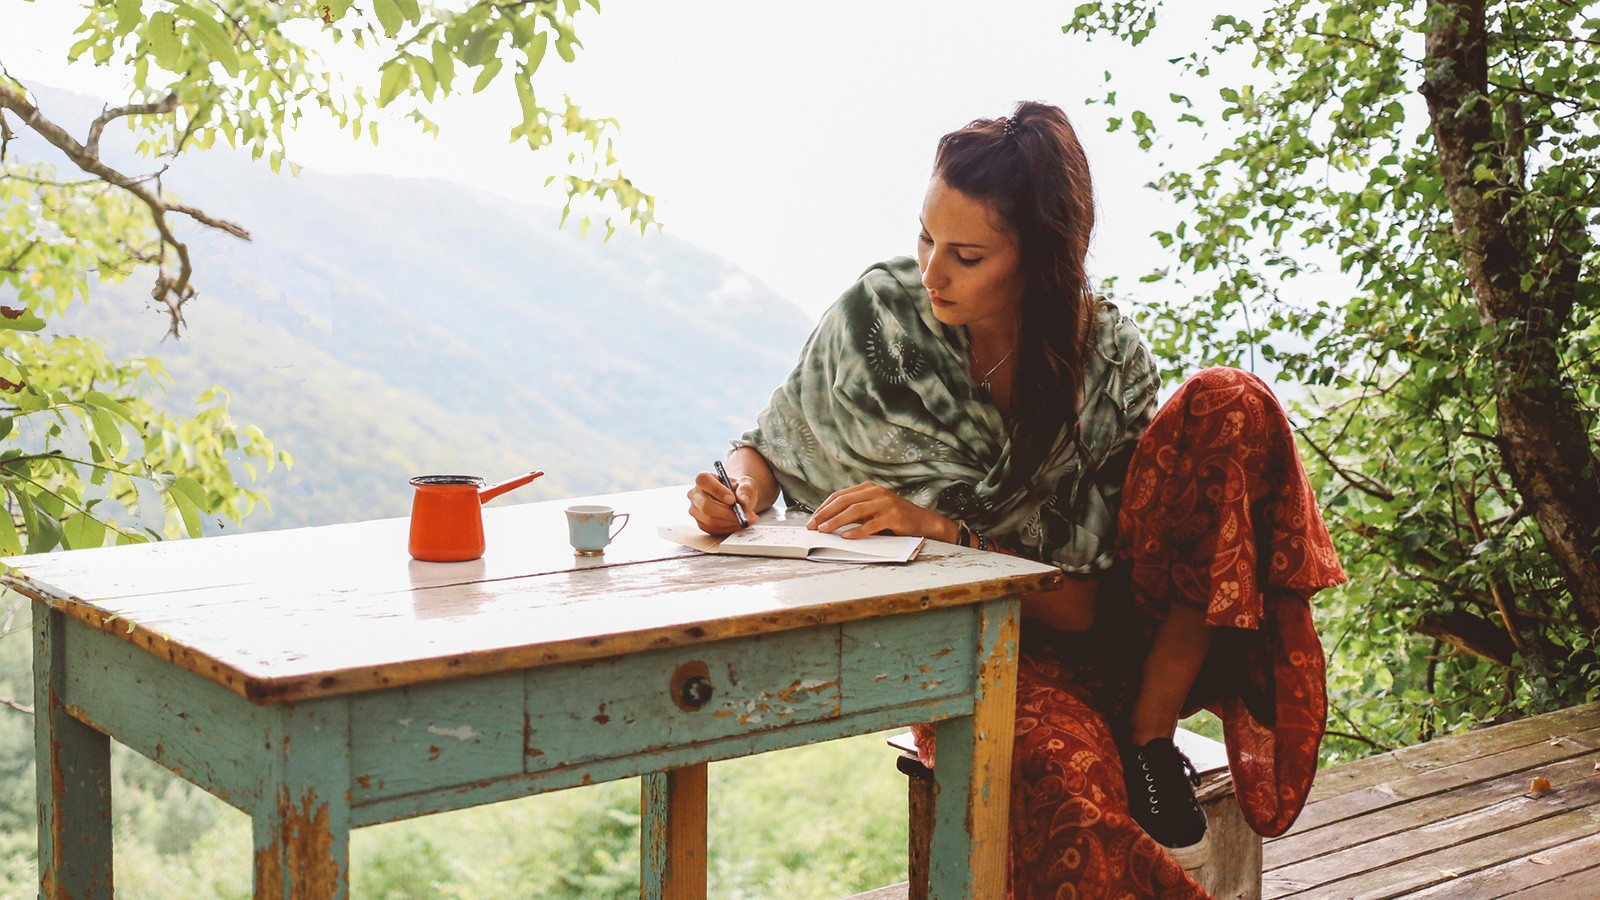 woman writing outdoors at table